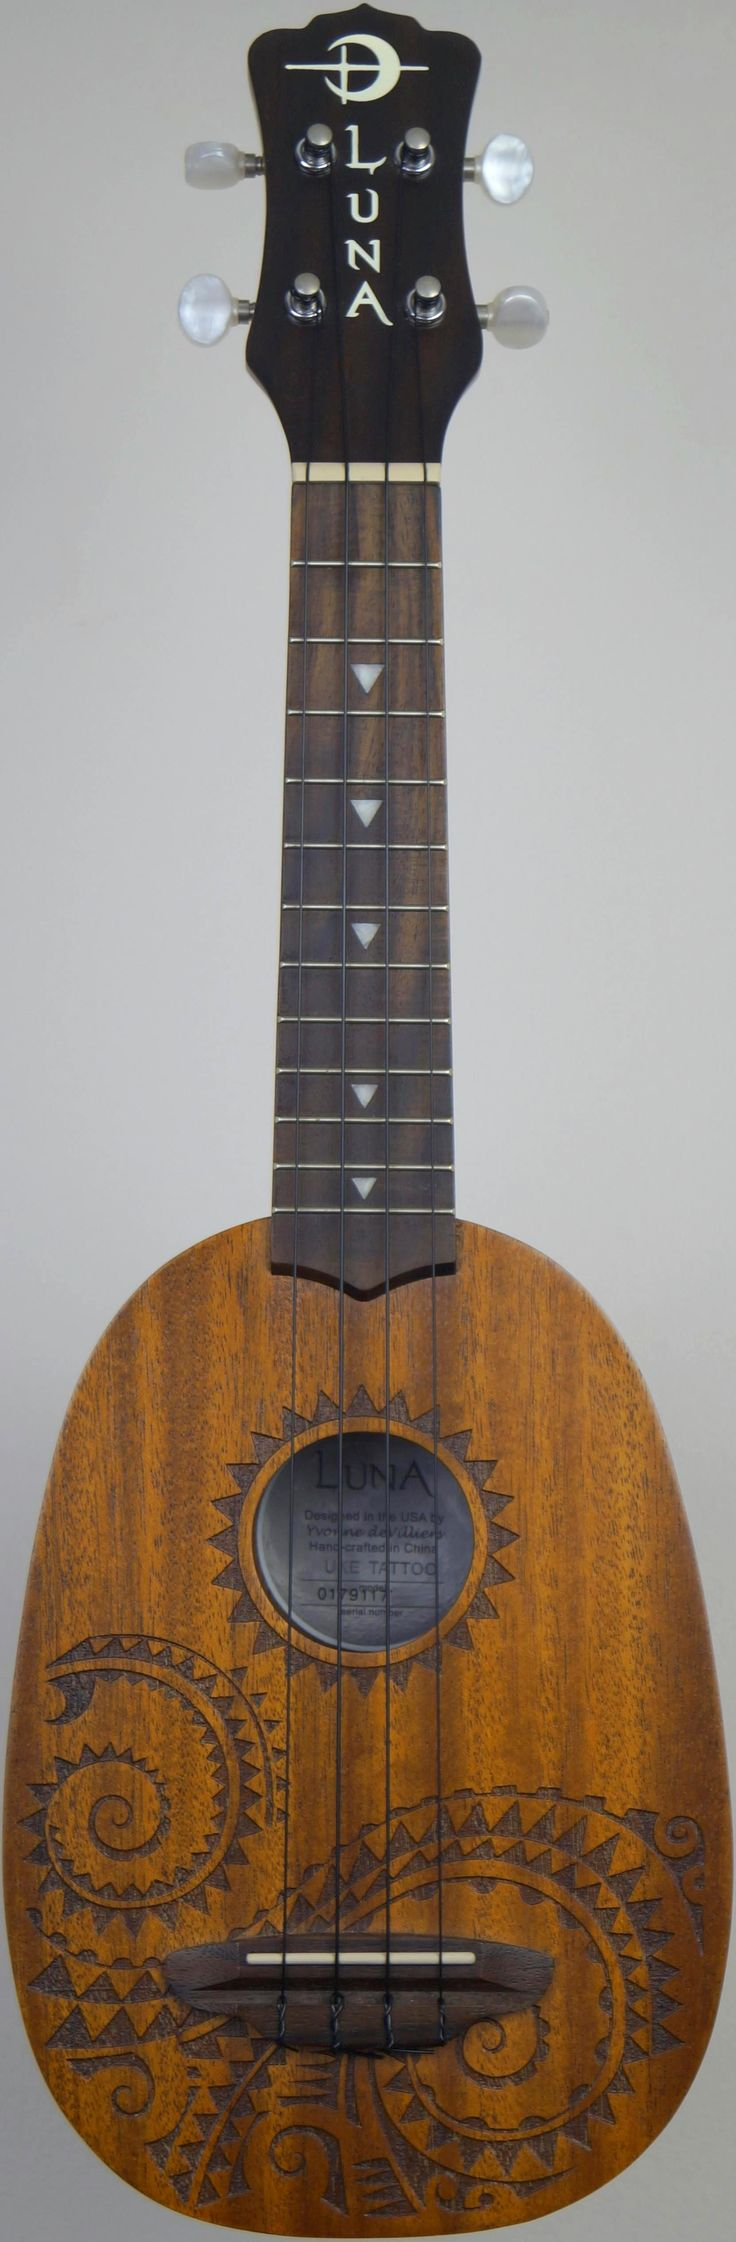 "lardyfatboy: My Luna ""Tattoo"" laser etched Soprano Pineapple at Ukulele Corner ==Ukulele of the day - 2 years ago --- https://www.pinterest.com/lardyfatboy/"